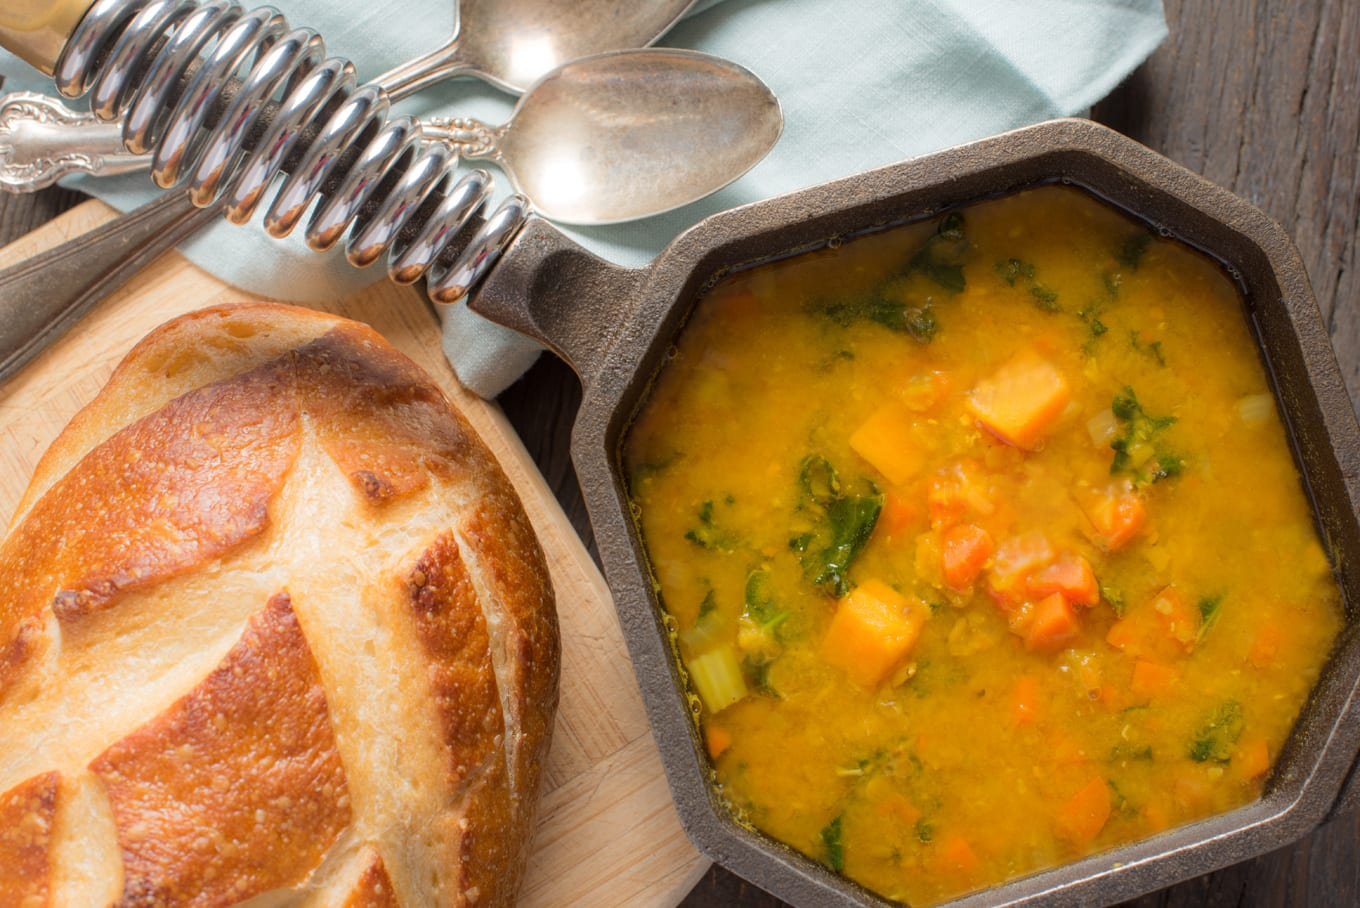 spiced lentil soup in small pot next to loaf of bread